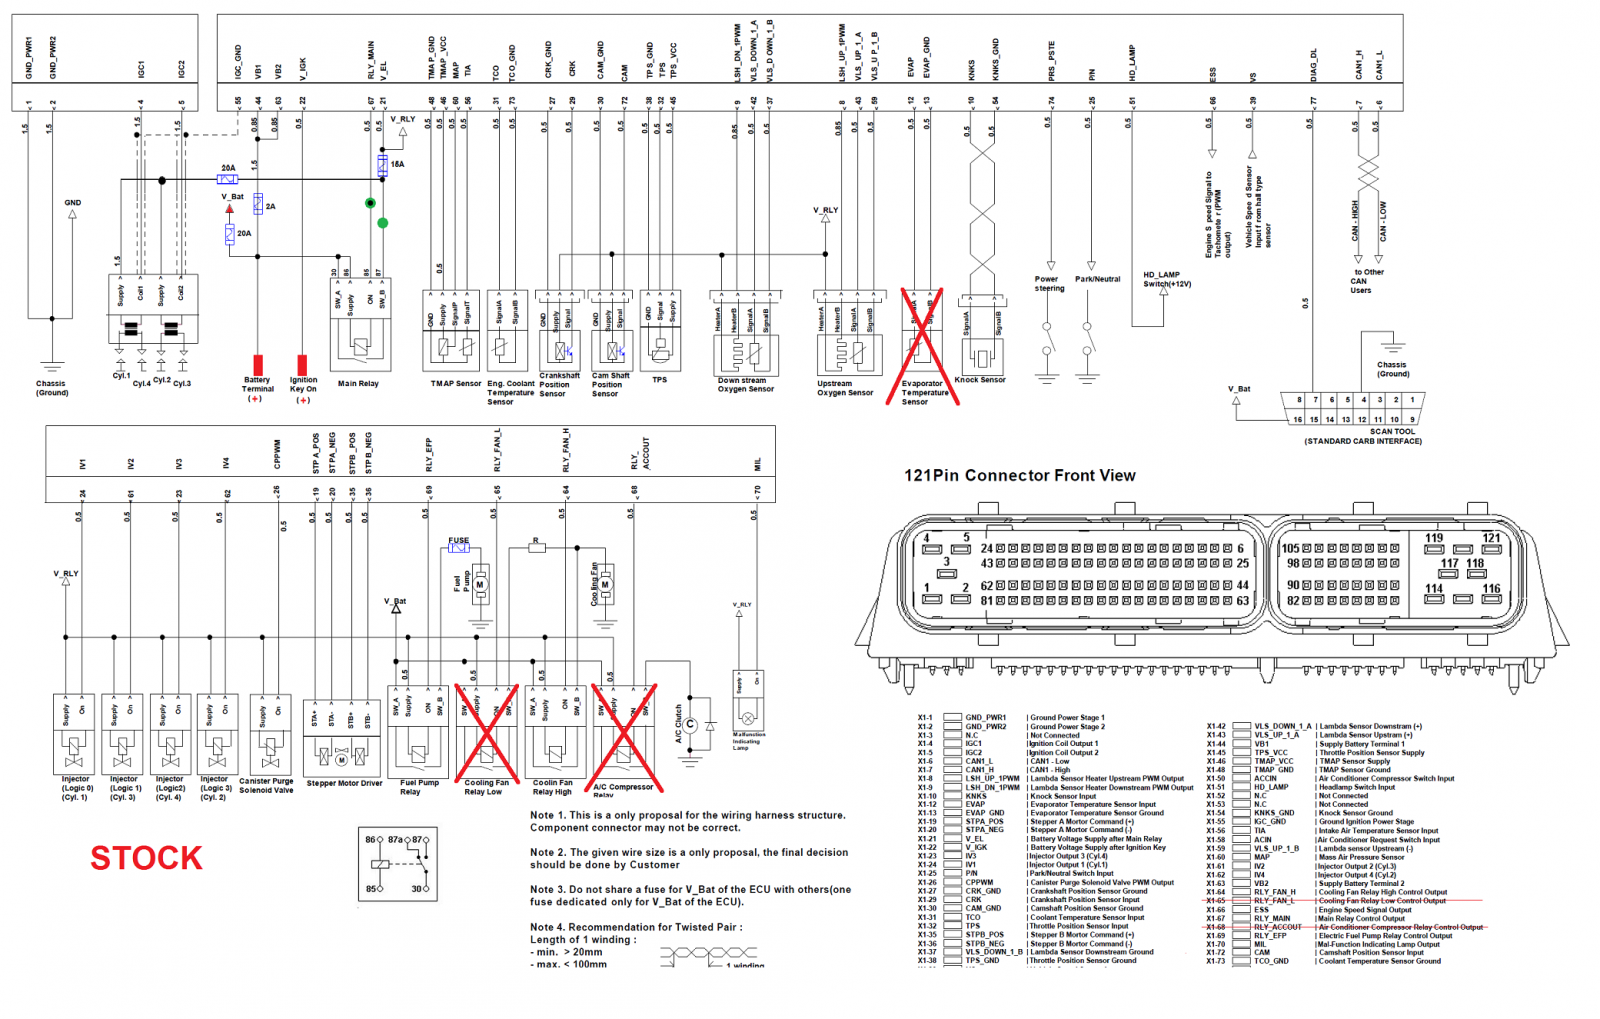 Trooper ECU Wiring Diagram